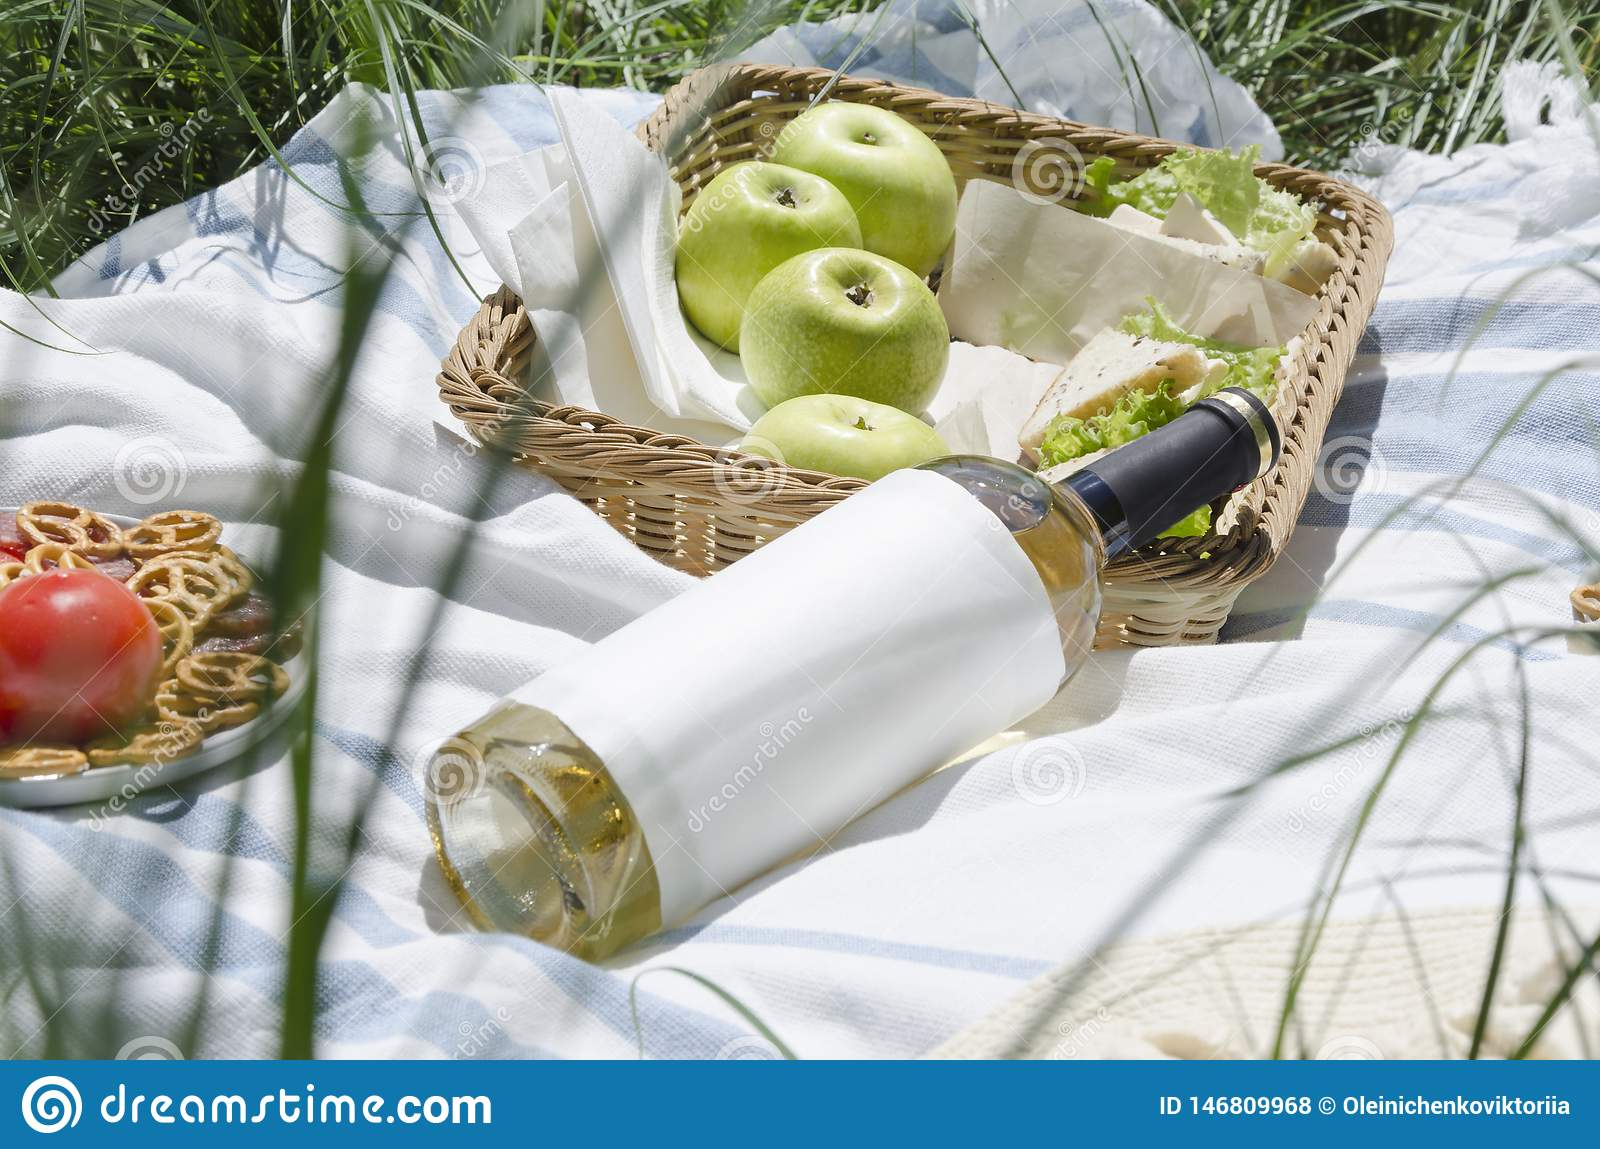 Closeup of bottle of white wine,juicy apples,delicious snacks.Picnic concept.Outdoor leisure.White wine as a great refreshing drin